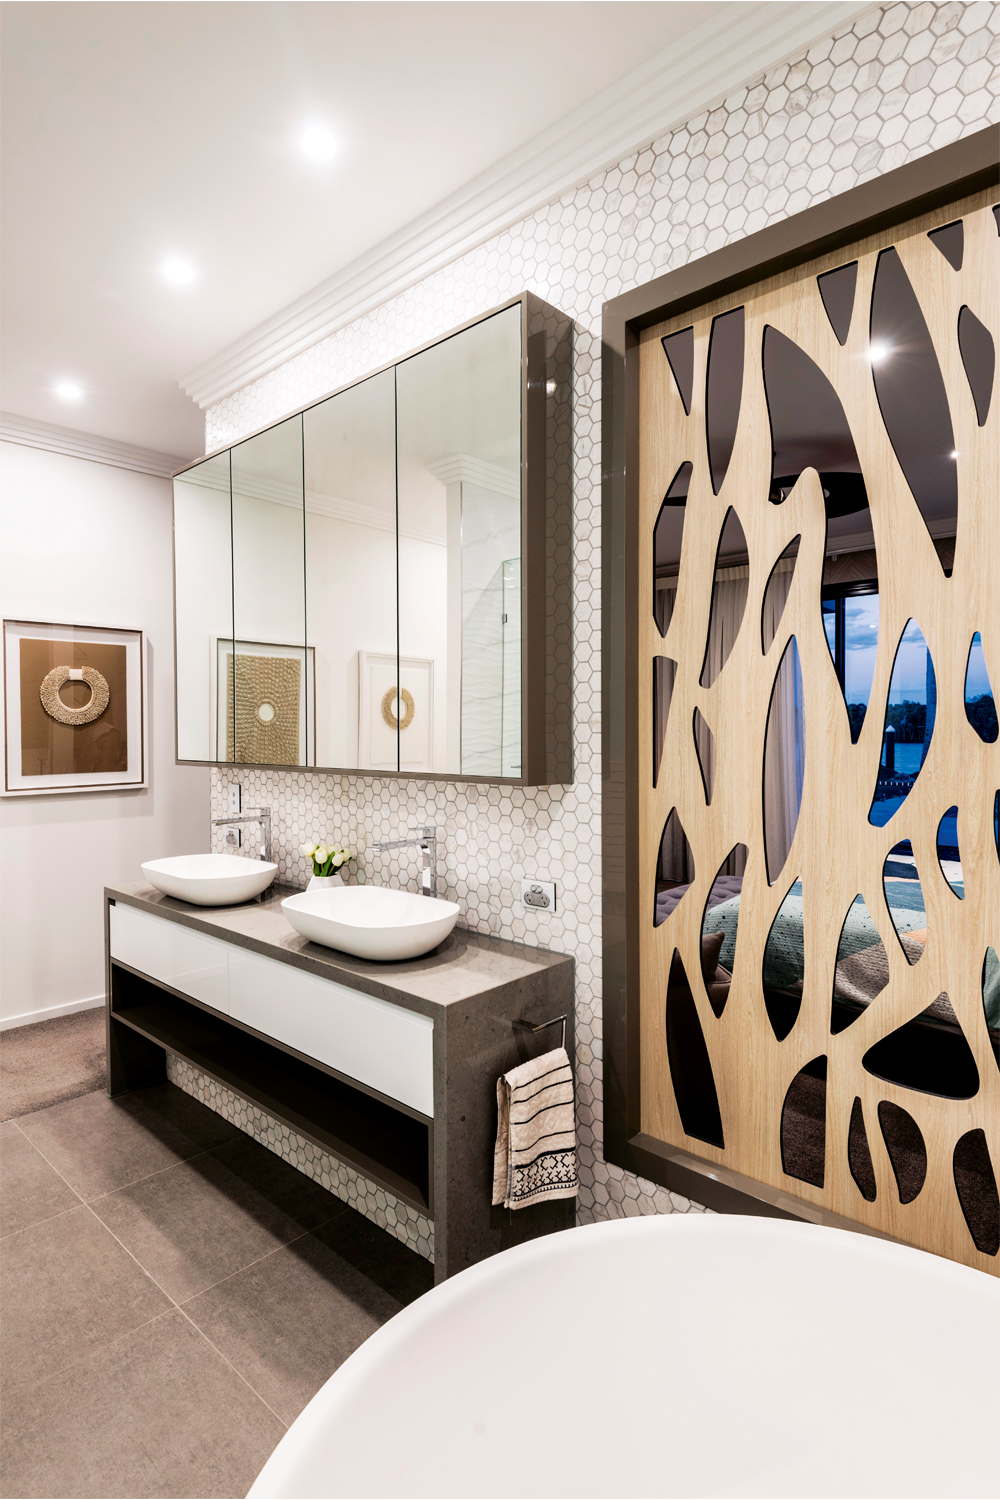 Luxe living: an elegant contemporary bathroom - vanity and mirror view 1